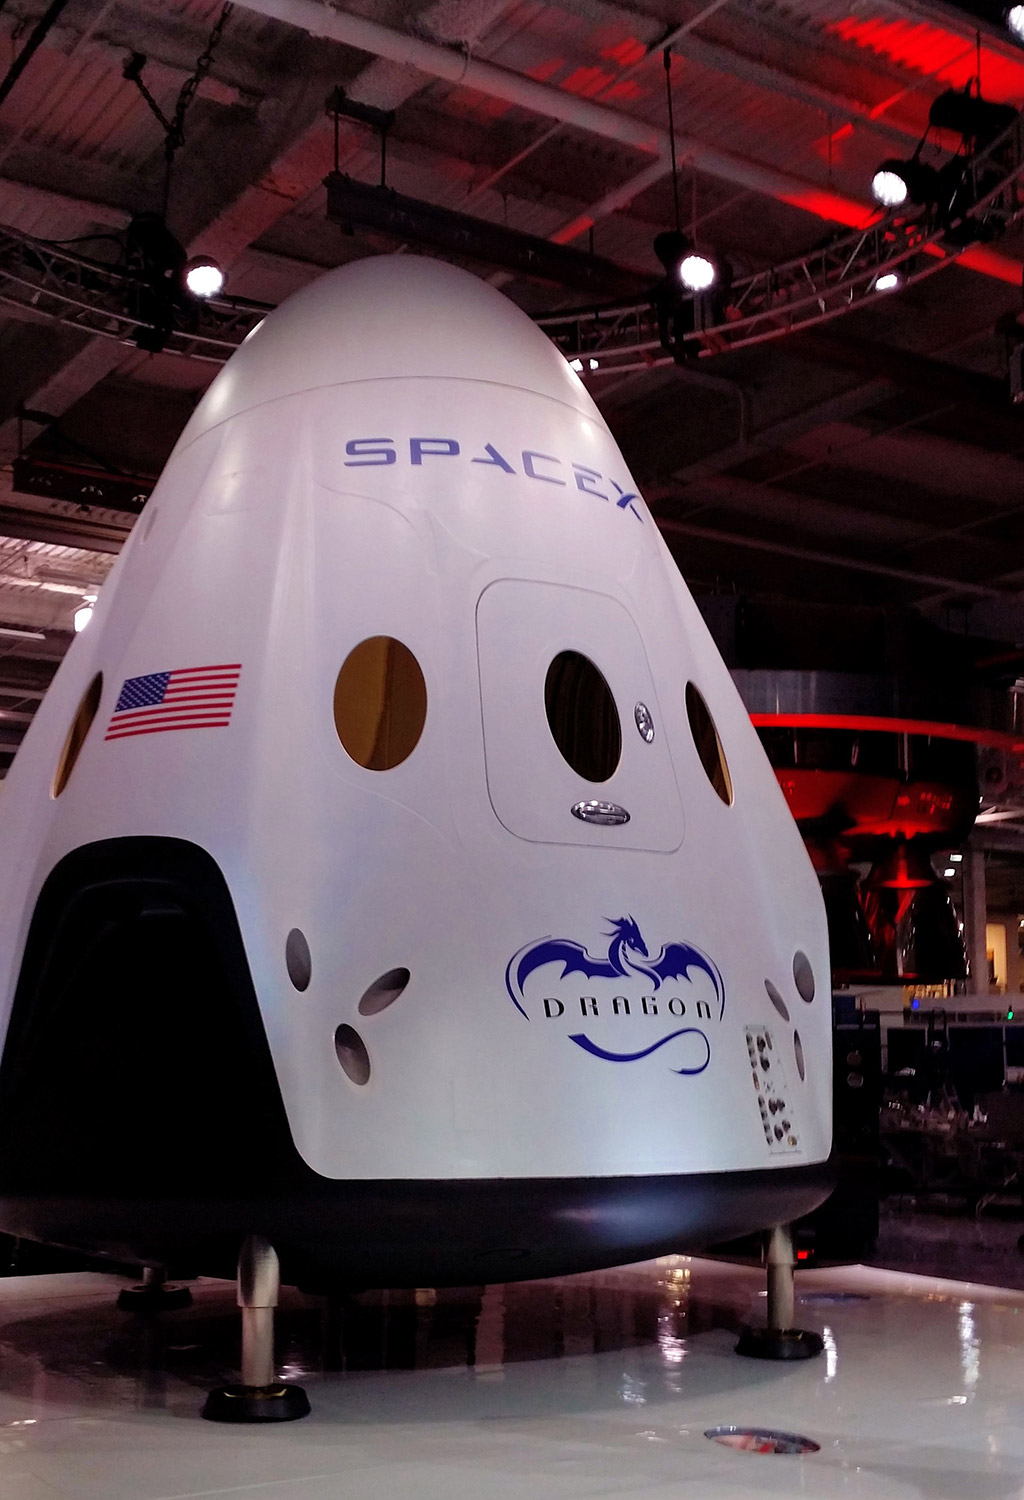 The Dragon V2 spacecraft. Credit: Mary Kanian